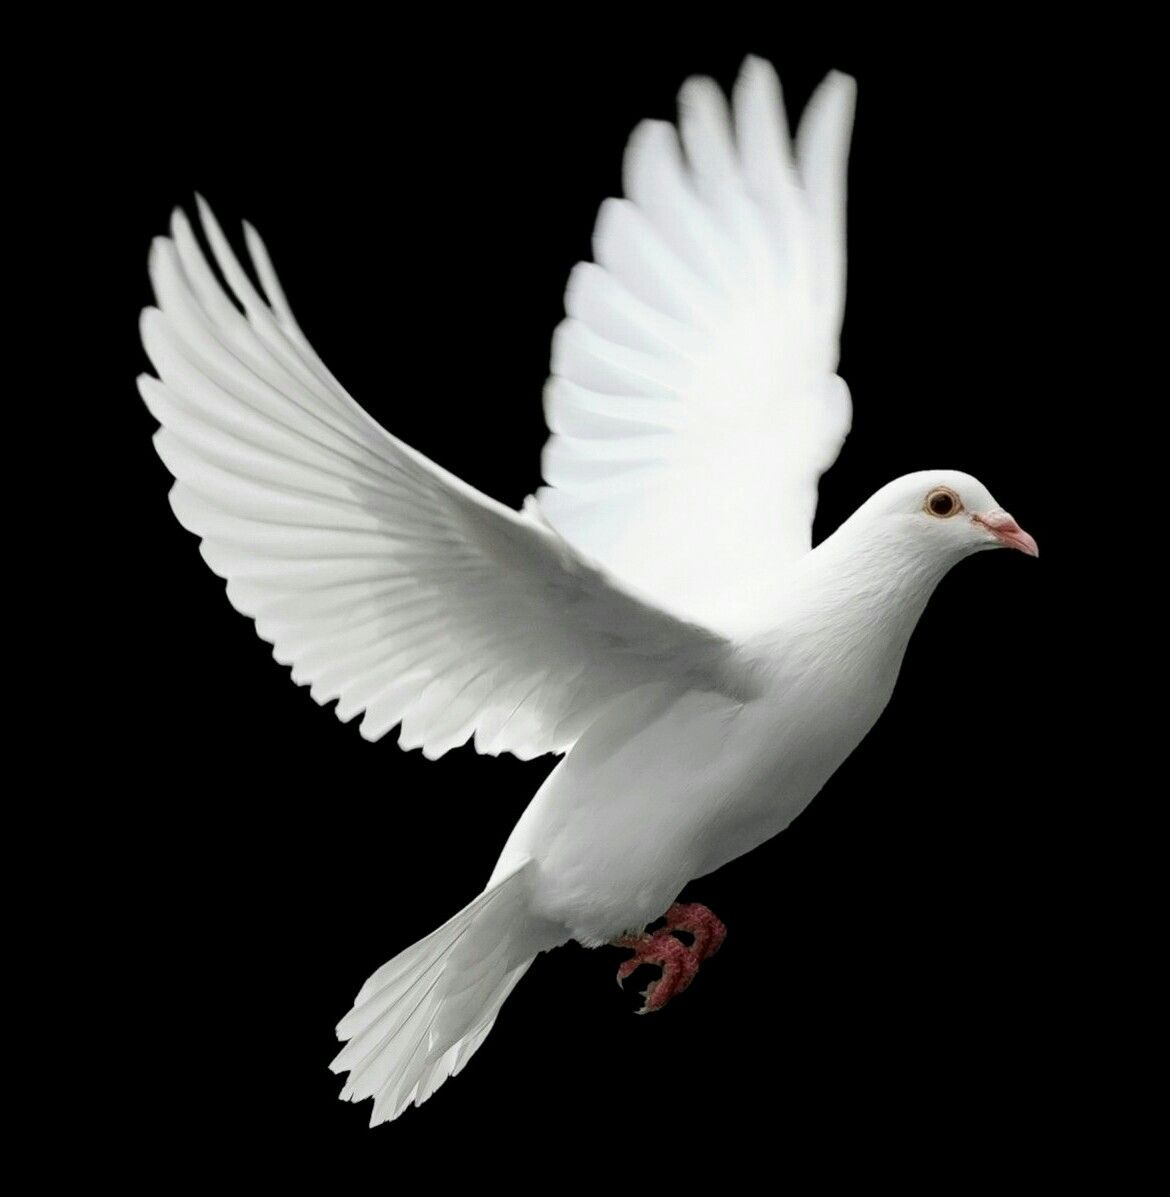 Free Download Flying Dove Transparent Png Image Clipart Picture With No Background Animals Birds Pigeons And Doves Dove Images Dove Flying Dove Drawing